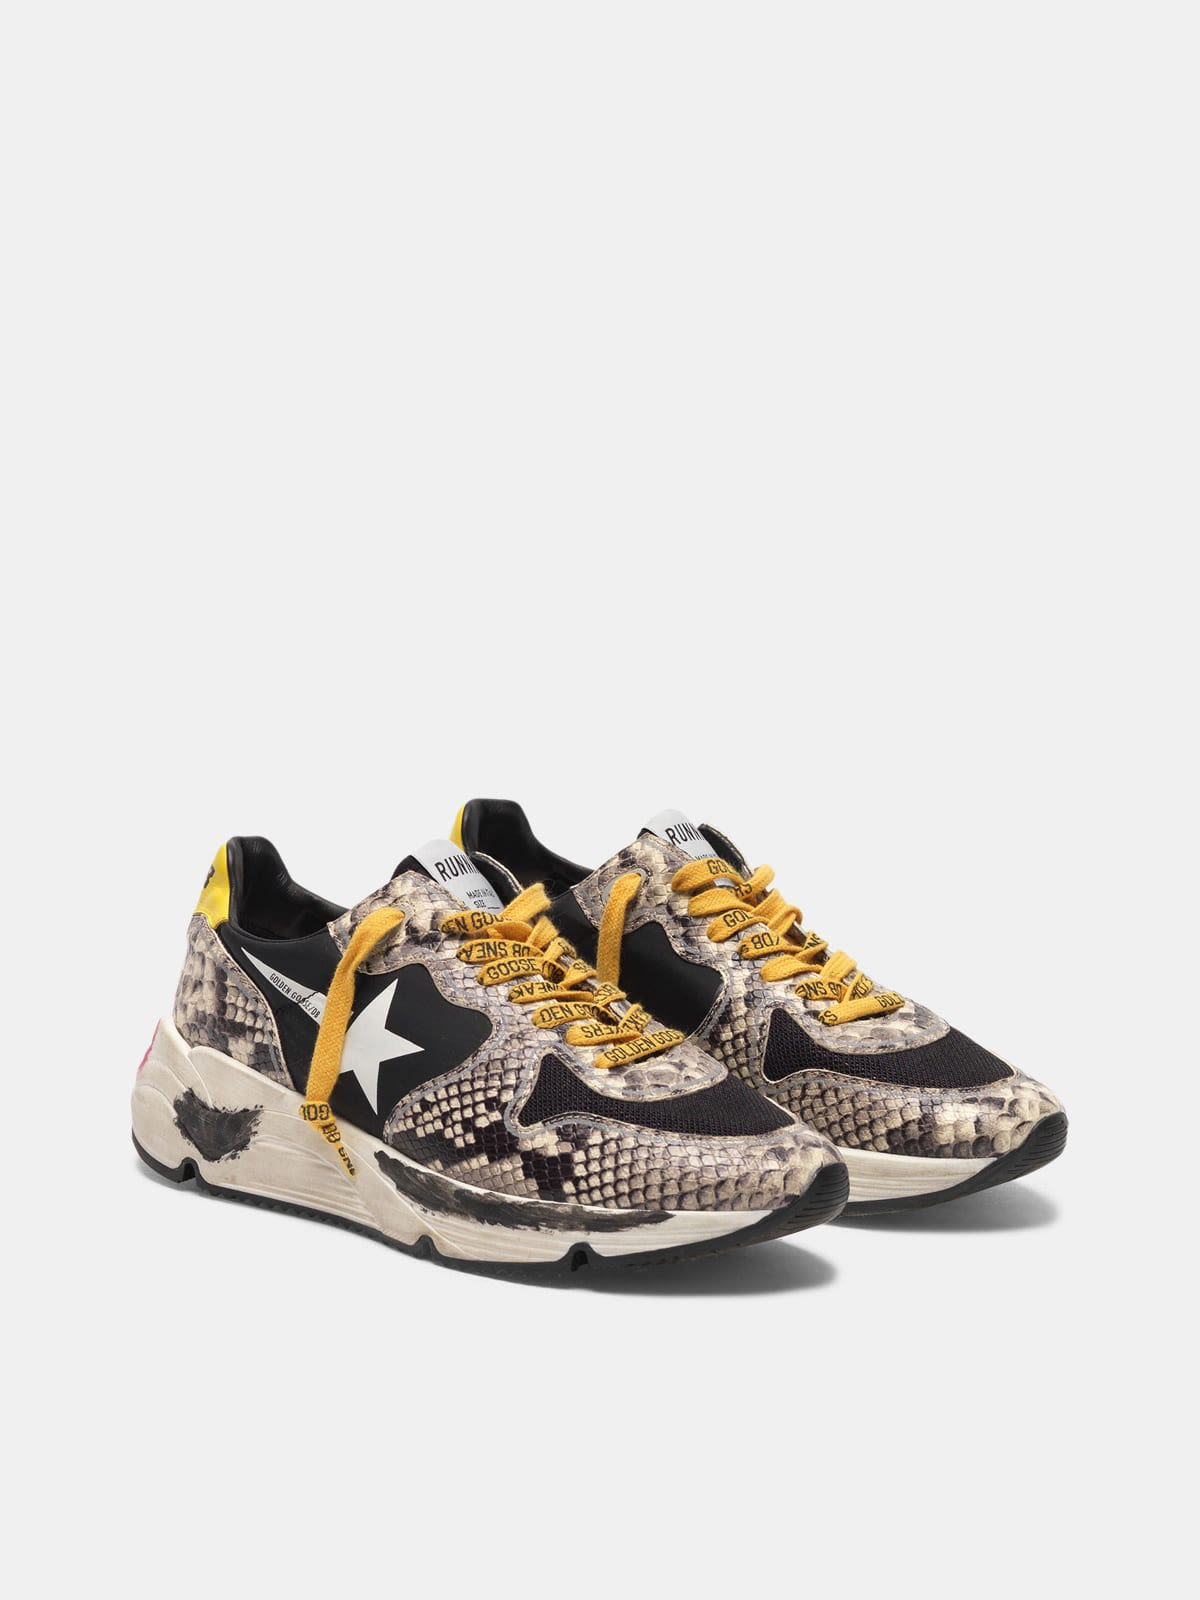 Running Sole sneakers in snake-print leather